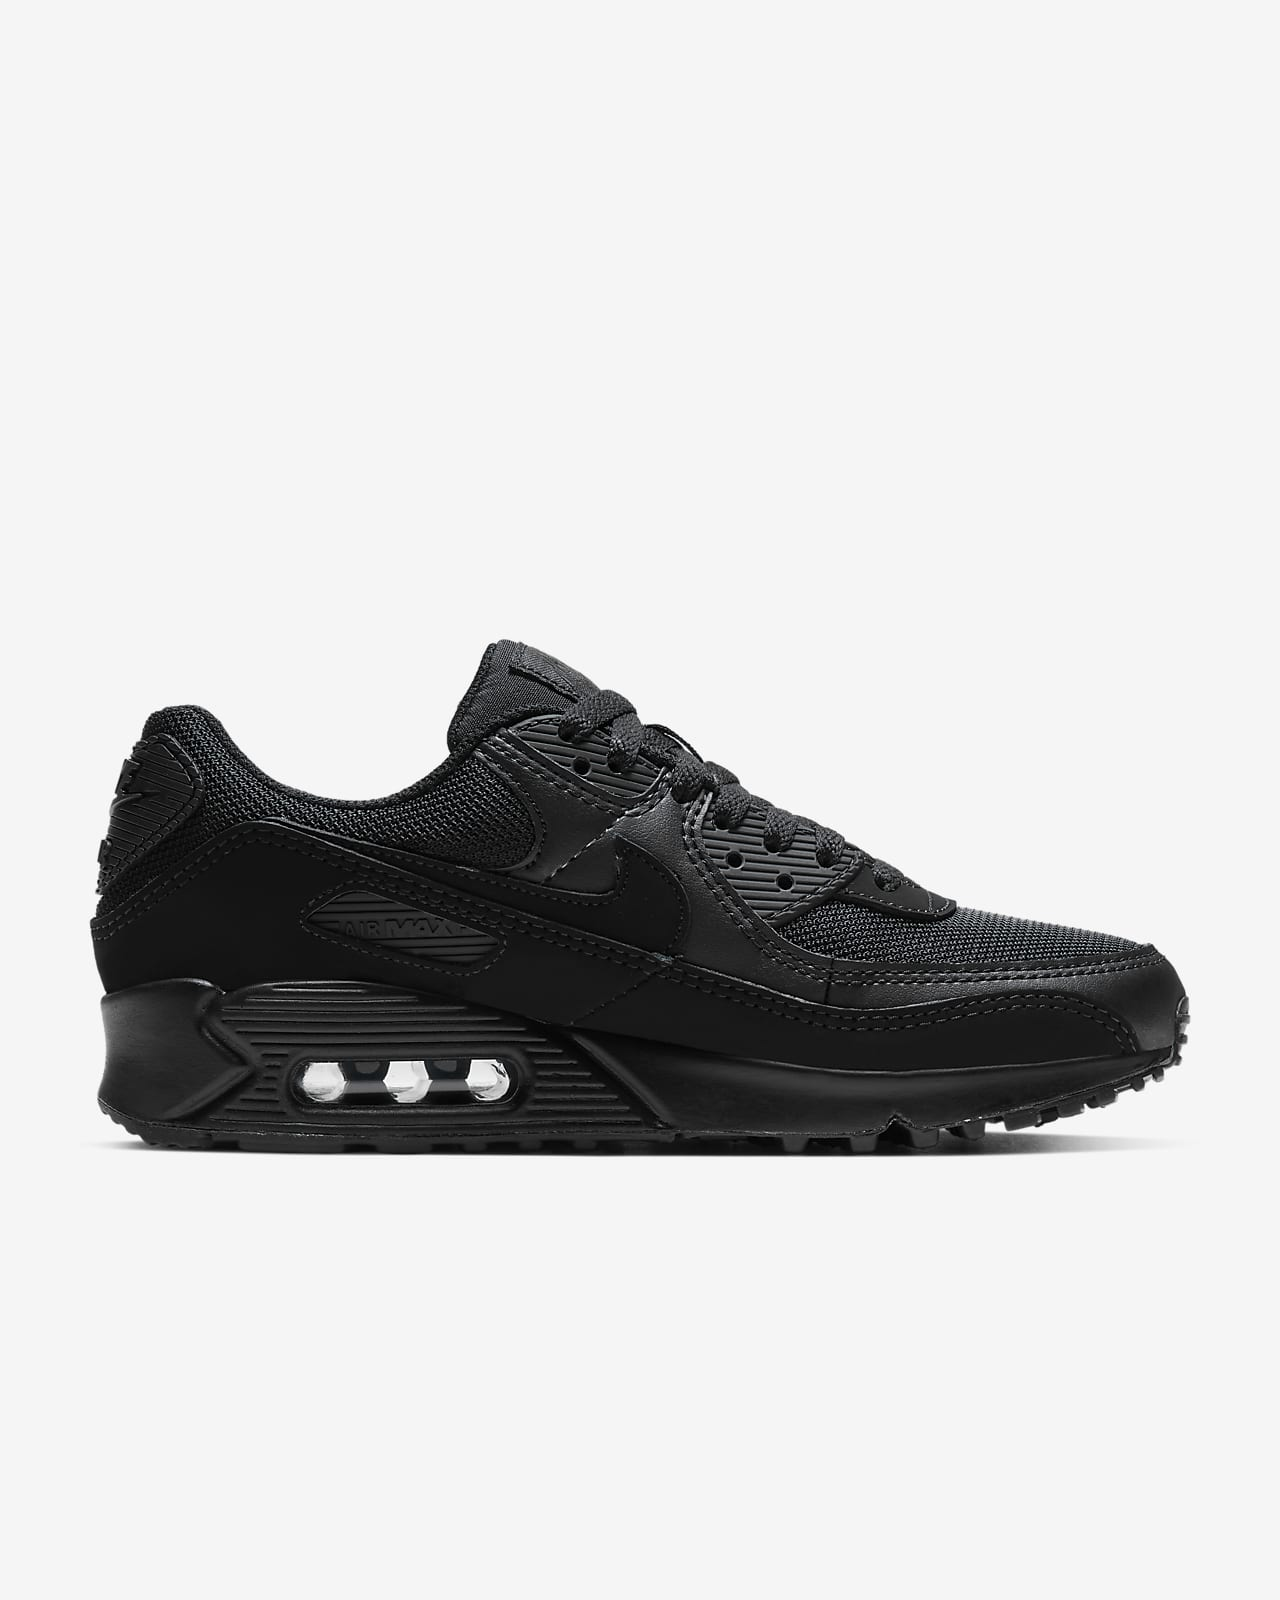 Nike Air Max 90 Vt Men All Black Running Shoes Portugal For